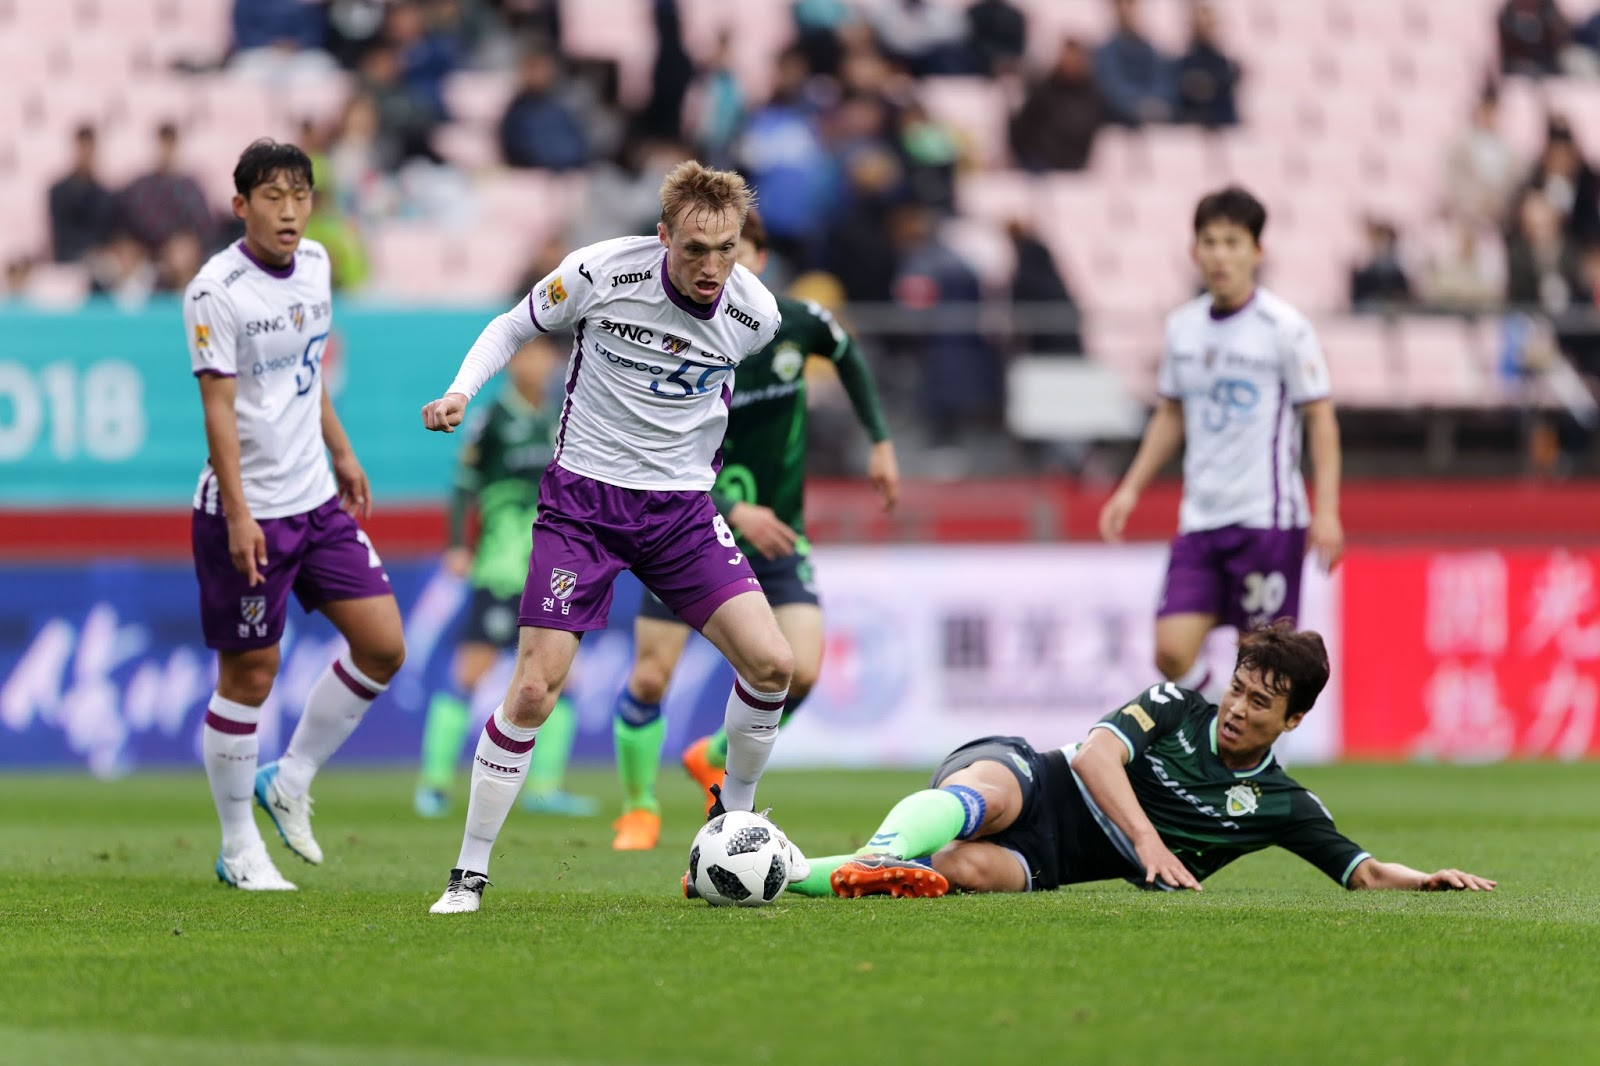 Preview: Jeonnam Dragons vs Gangwon FC in K League 1